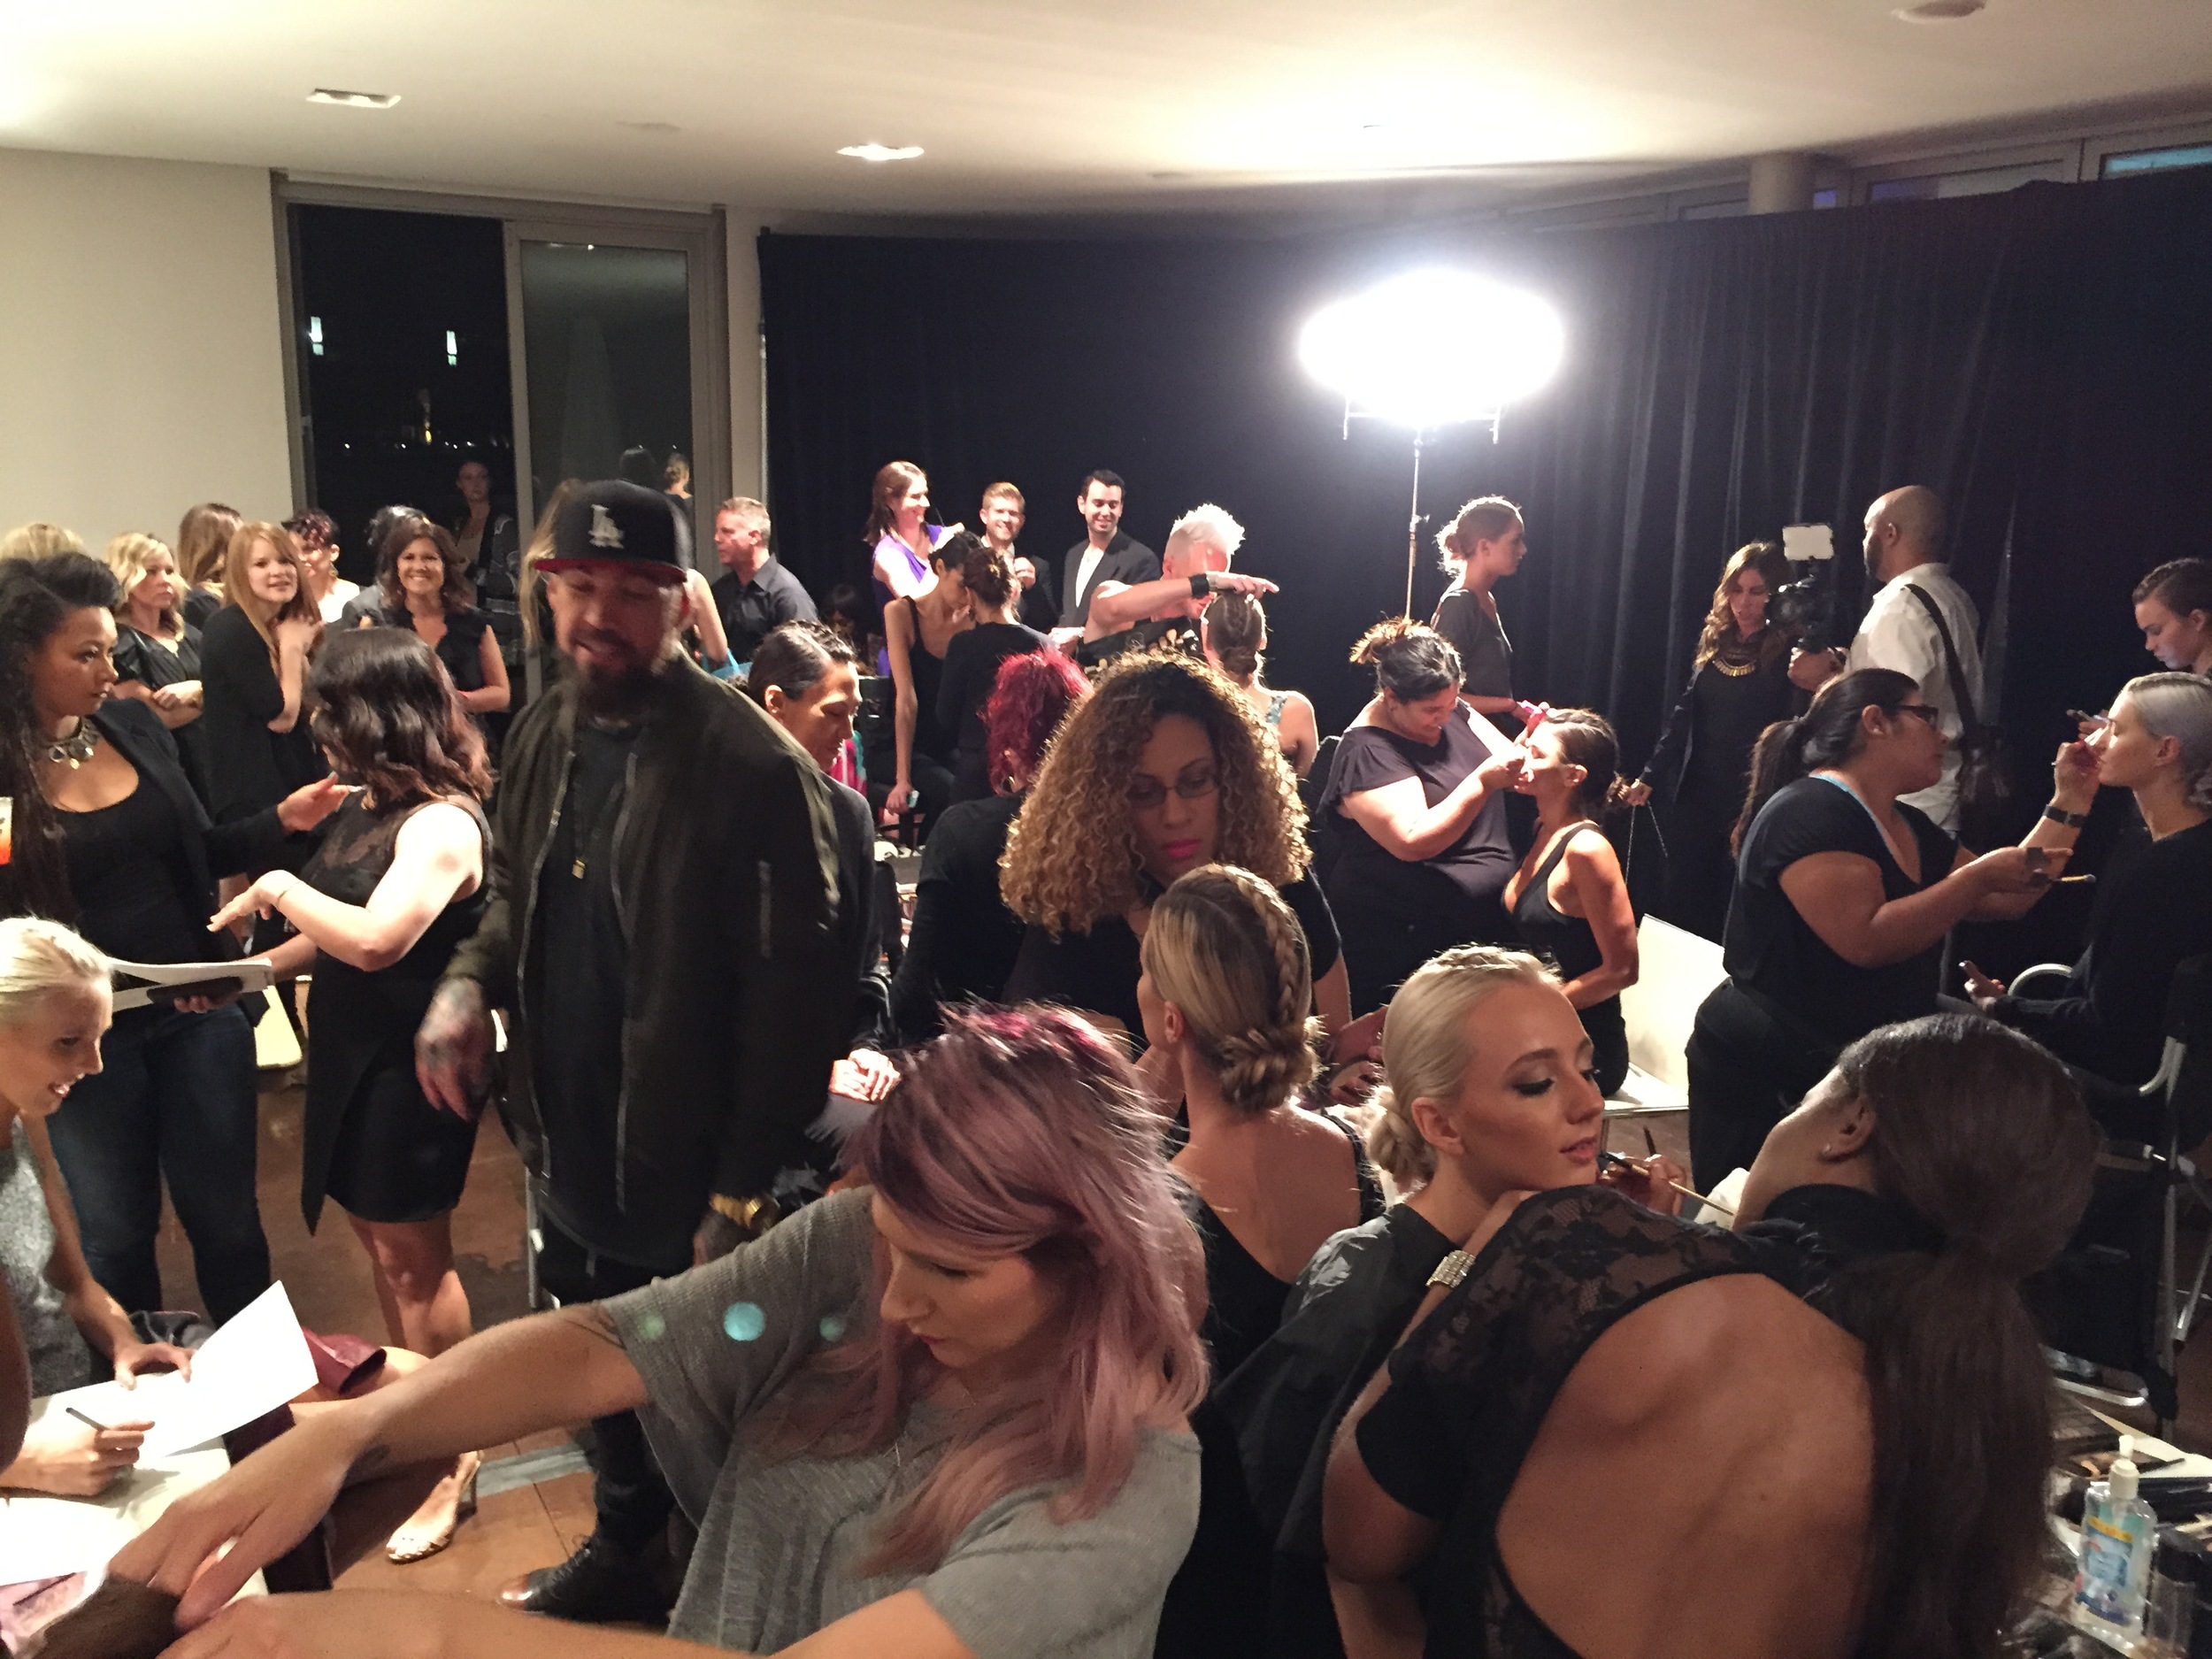 Jenny Strebe and the Bespoke Salon team working their magic backstage at Splash into Summer, W Scottsdale.